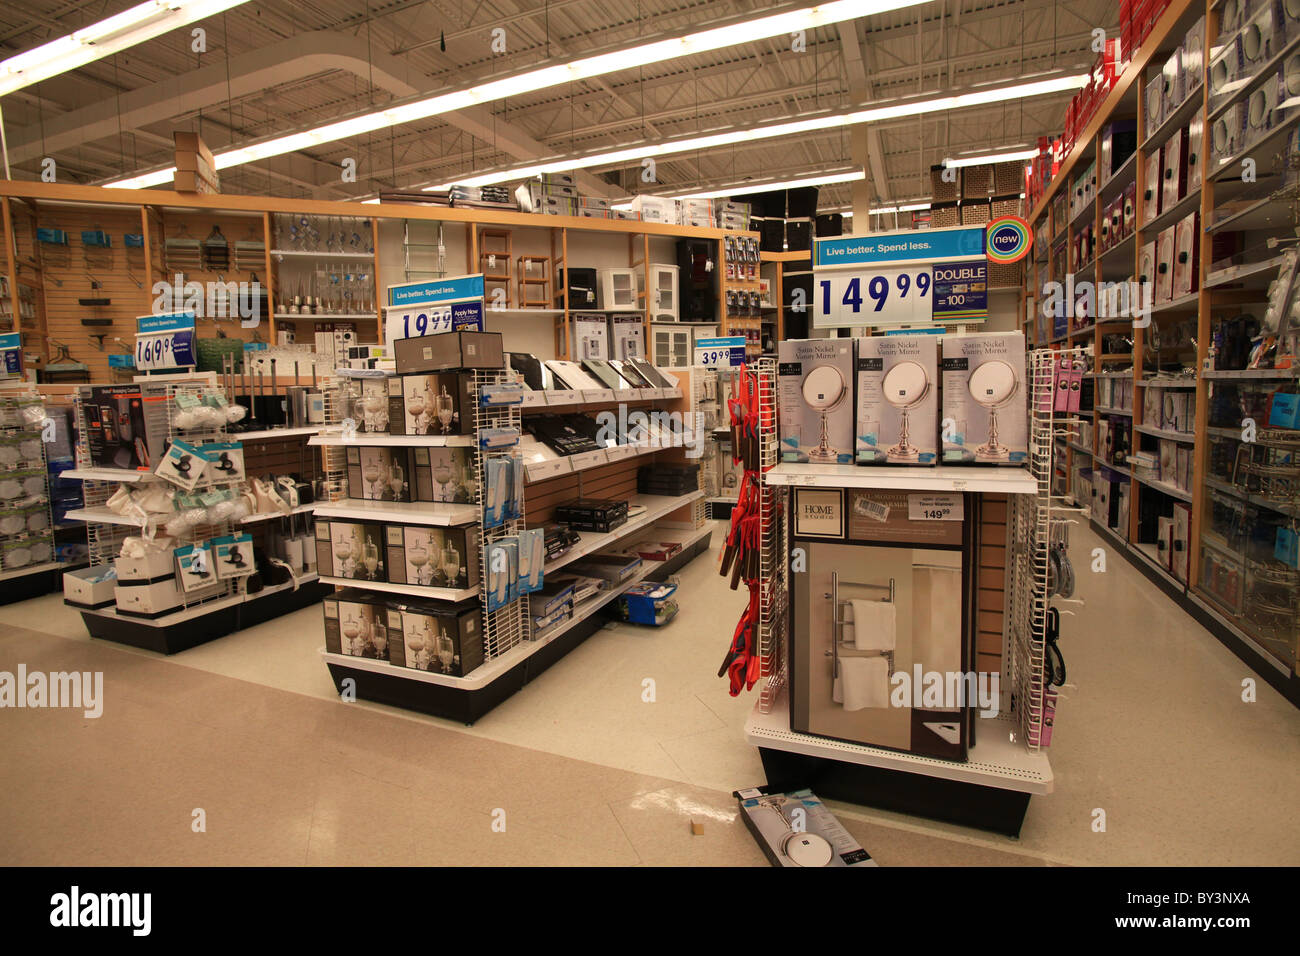 Bathroom Accessories For Sale In Home Outfitters Outlet Store In - Bathroom accessories store near me